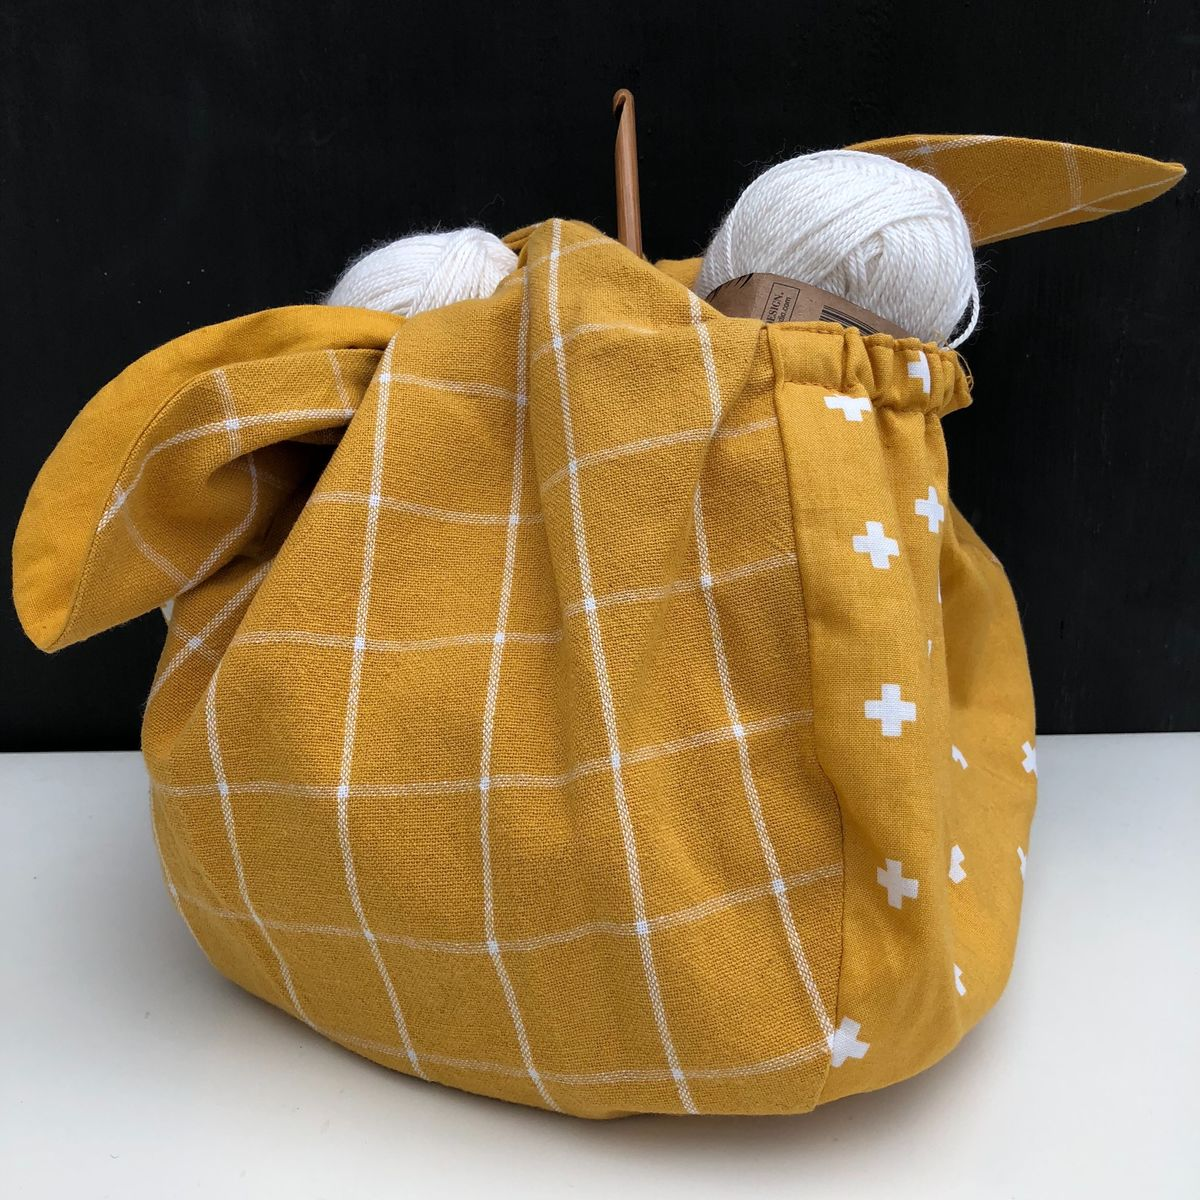 Japanese style cotton knotted fabric bag - mustard/cream - product images  of